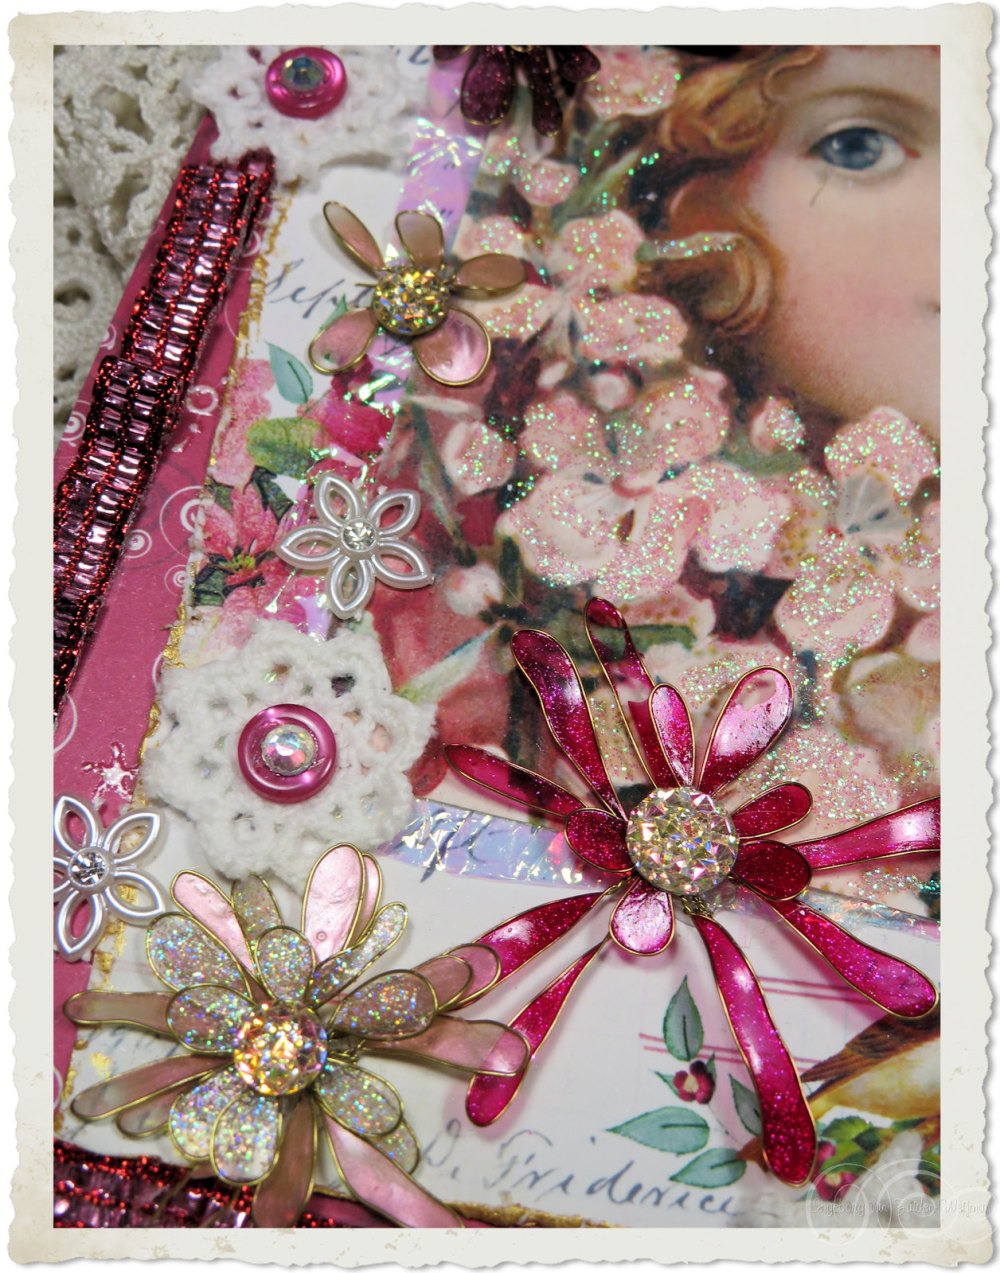 Handmade wired flowers with bling bling